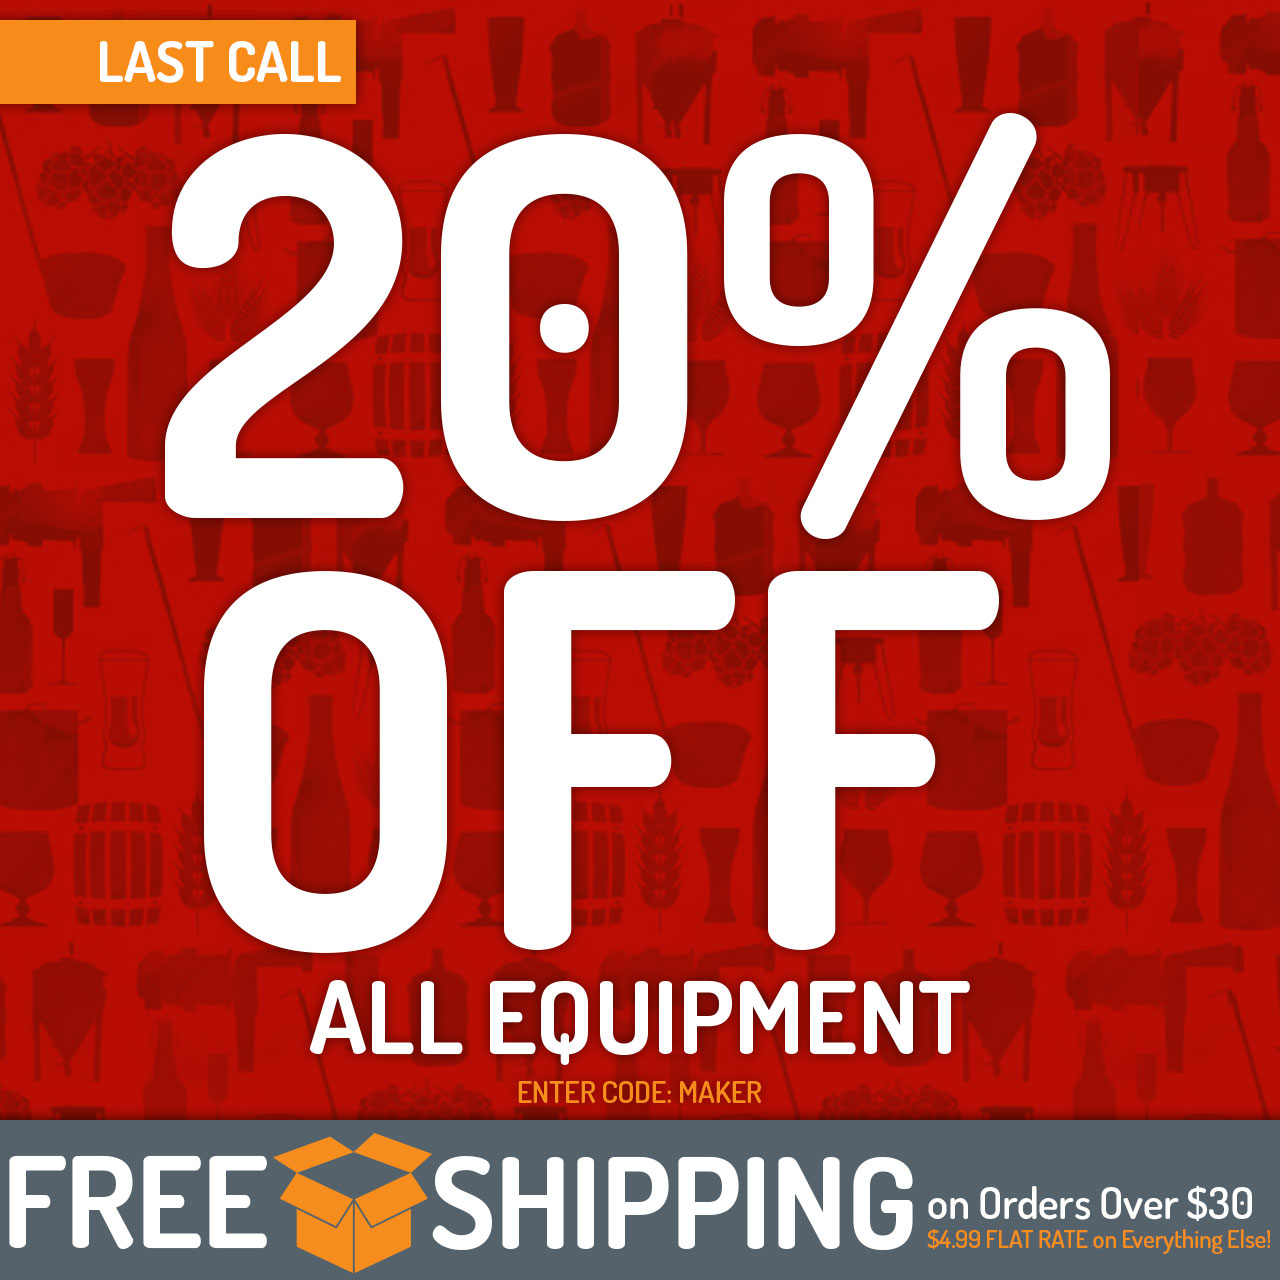 20% Off All Equipment now through 11:59pm CST on 5/29/2018. Use code: MAKER.